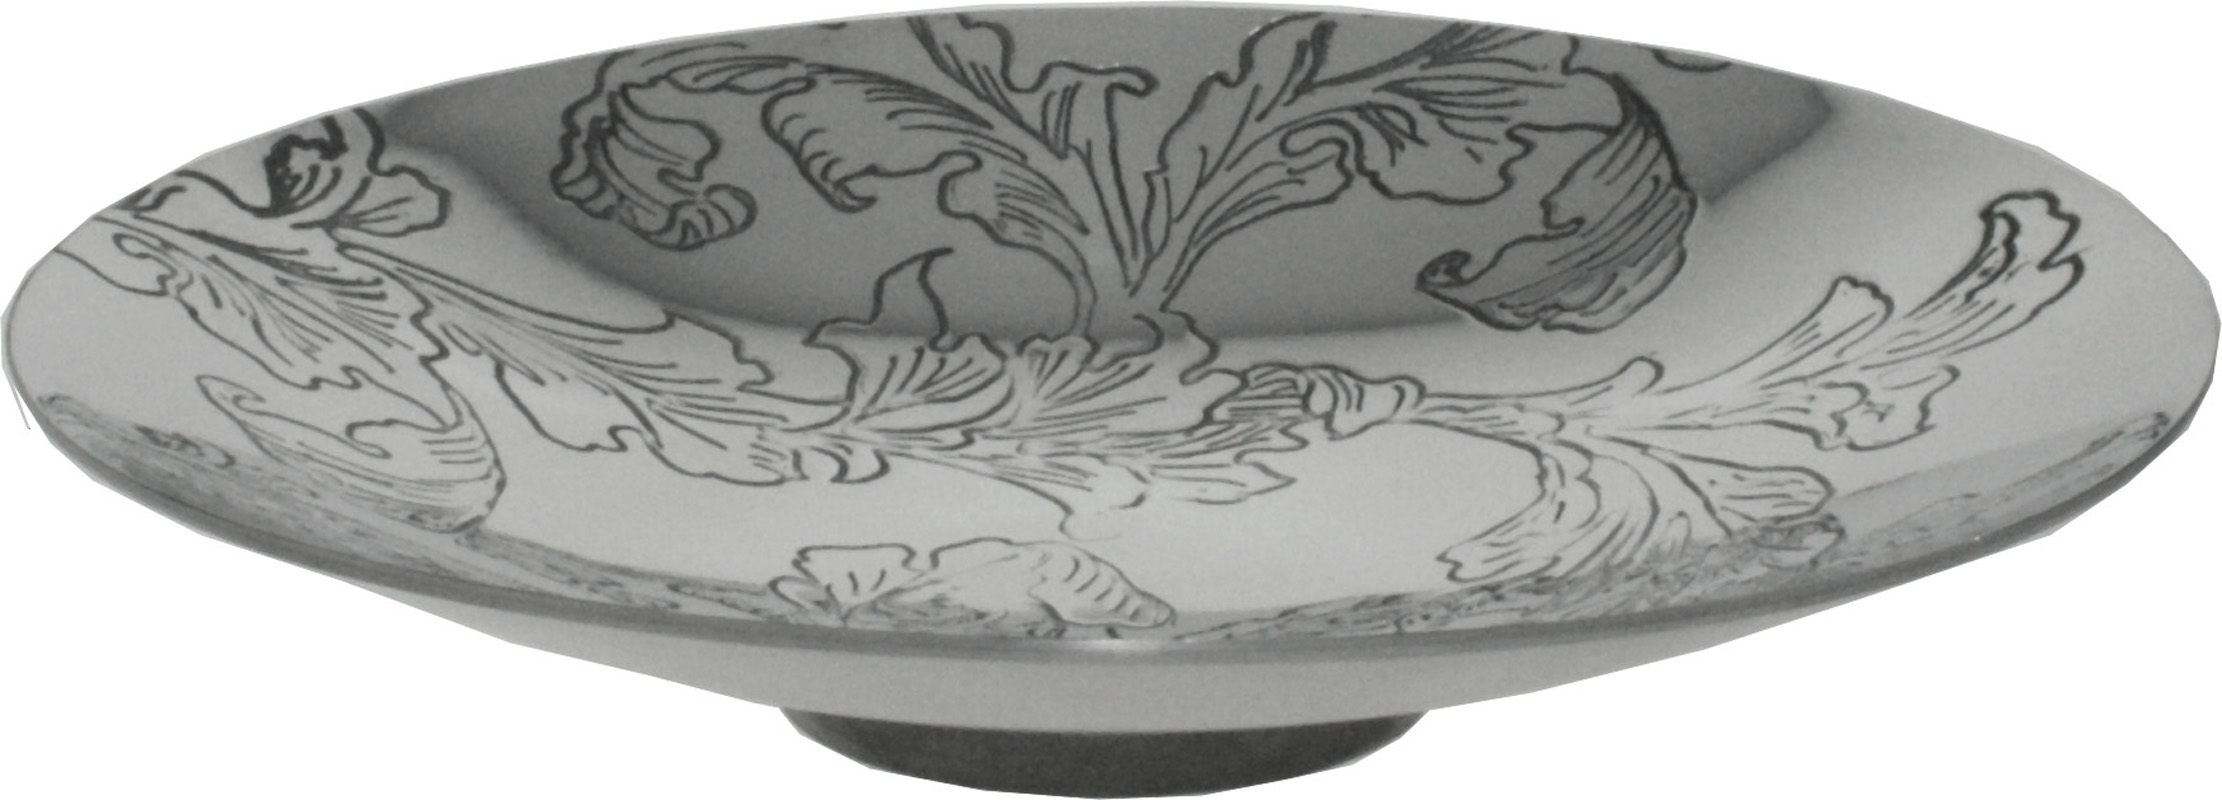 "Acanthus Pattern Pewter Bowl 20.5cm (8"")"